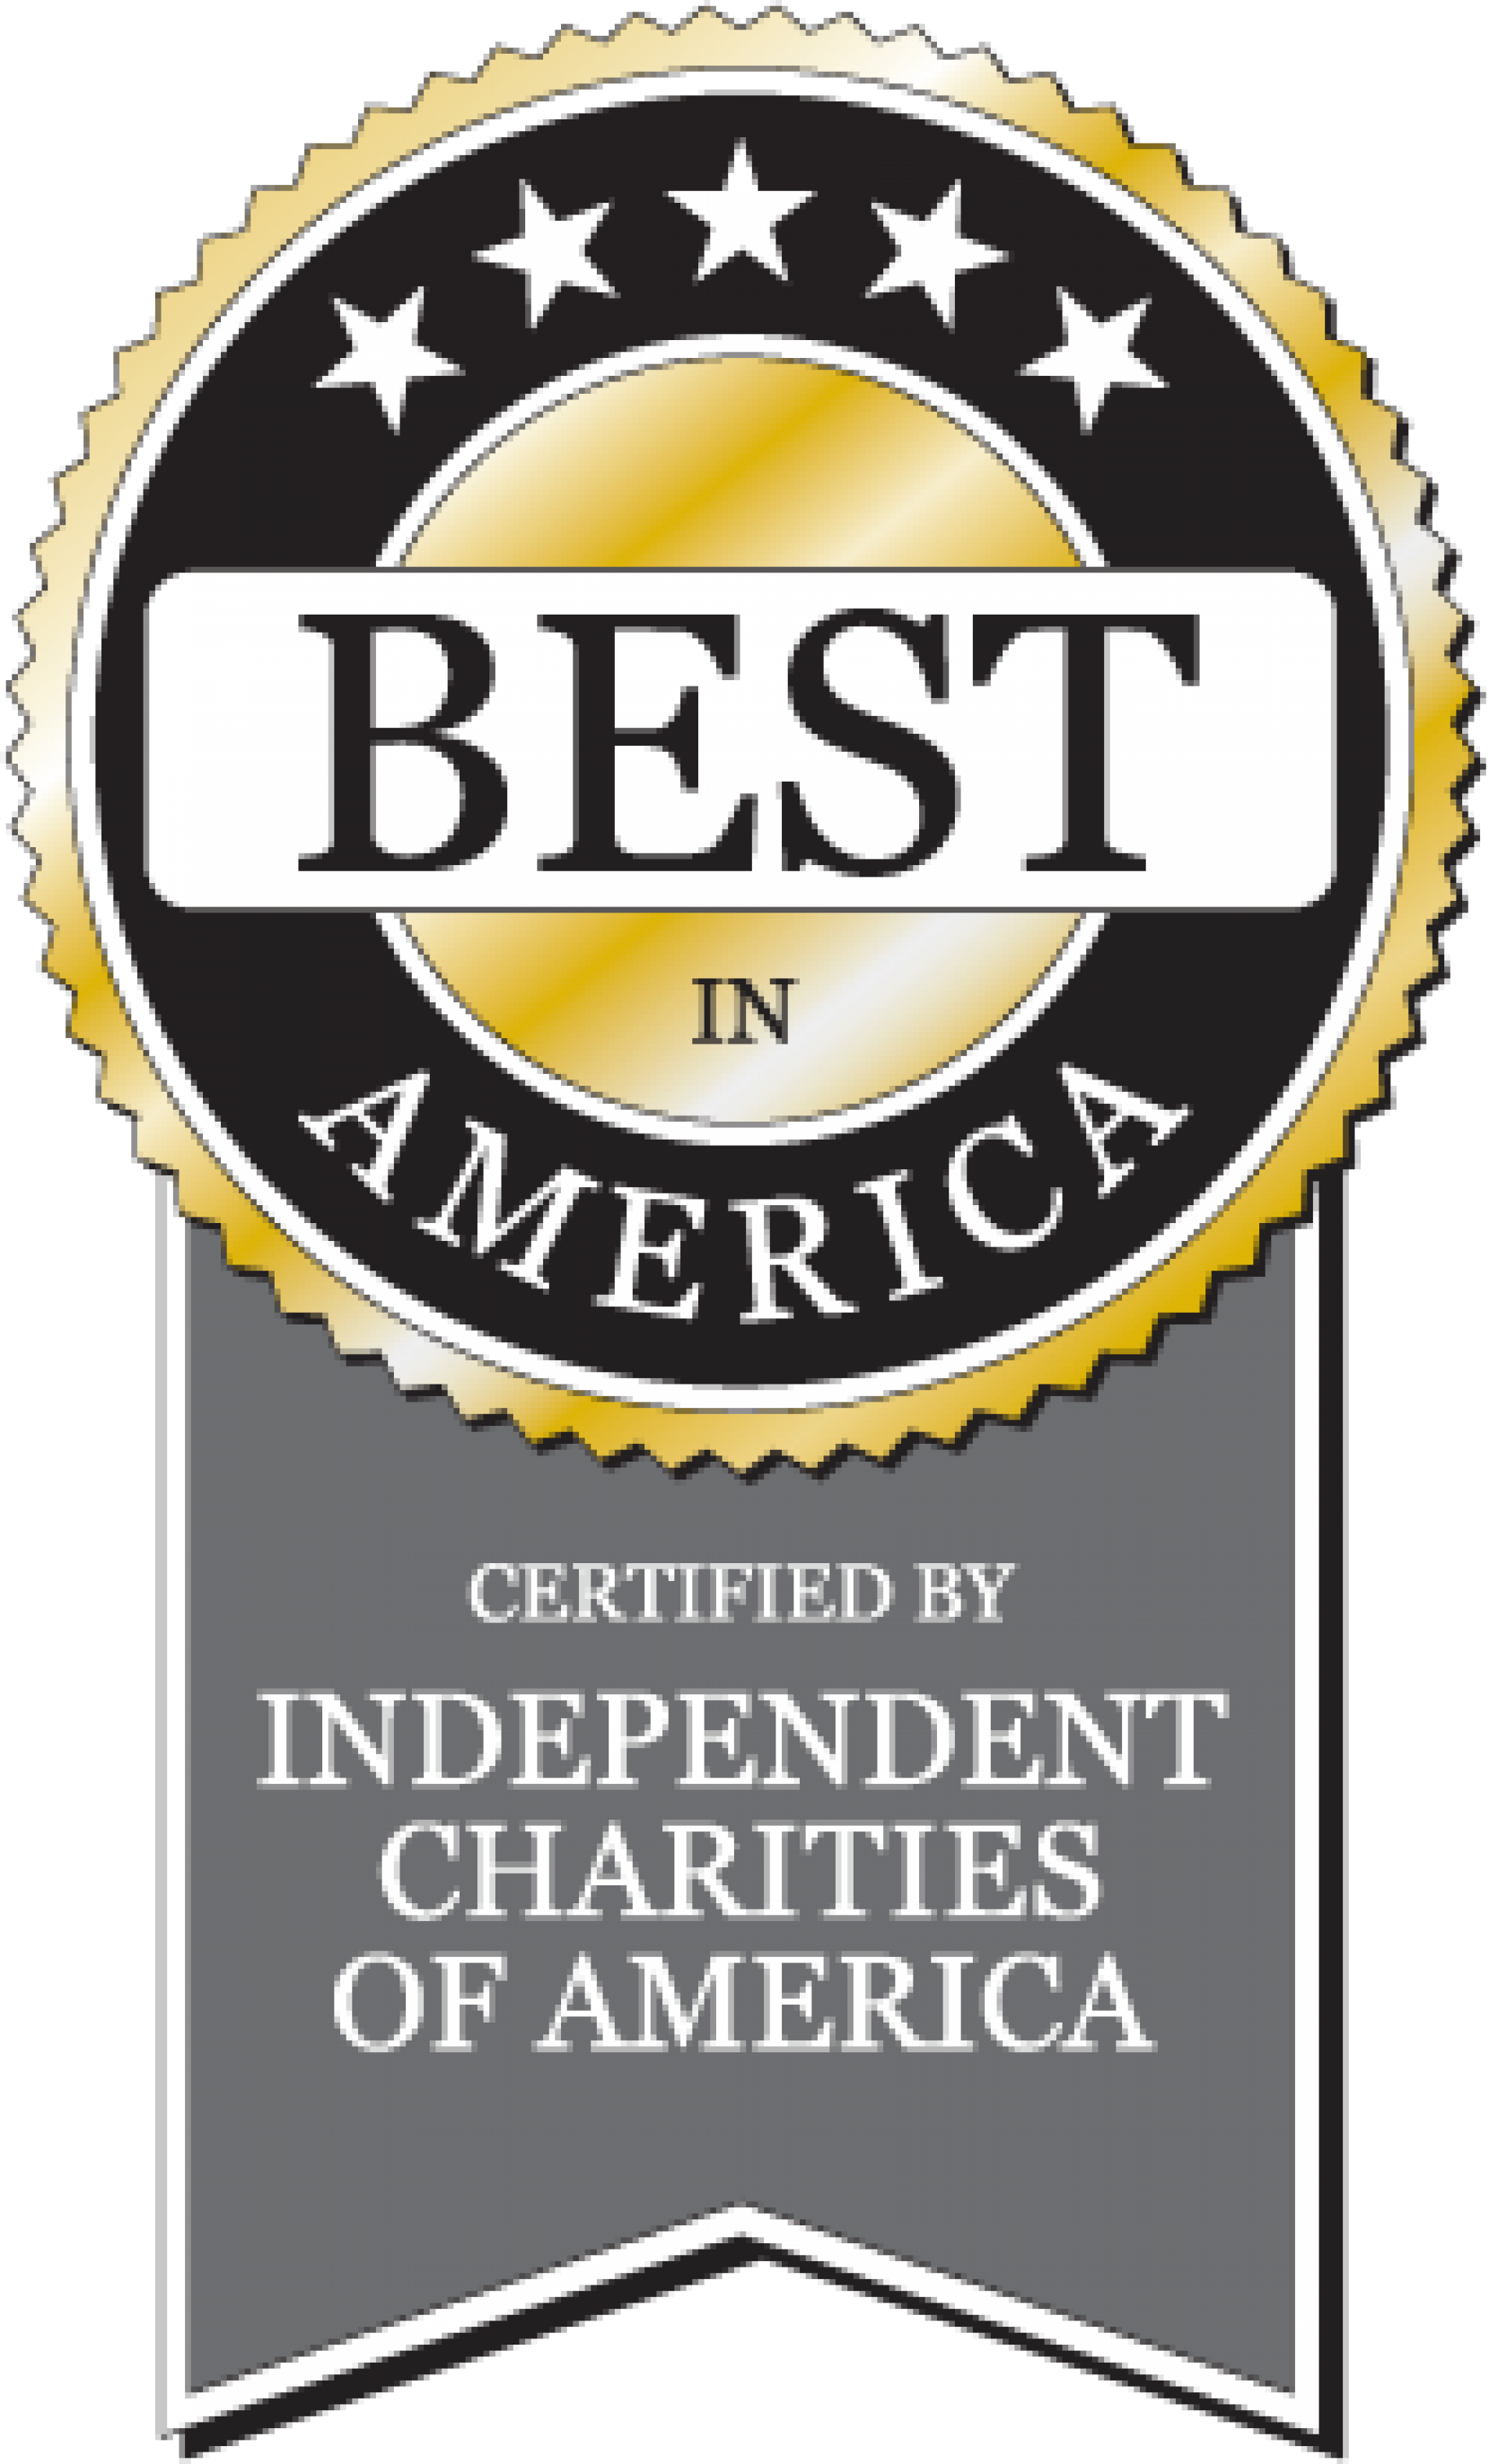 Certified by Independent Charities of America